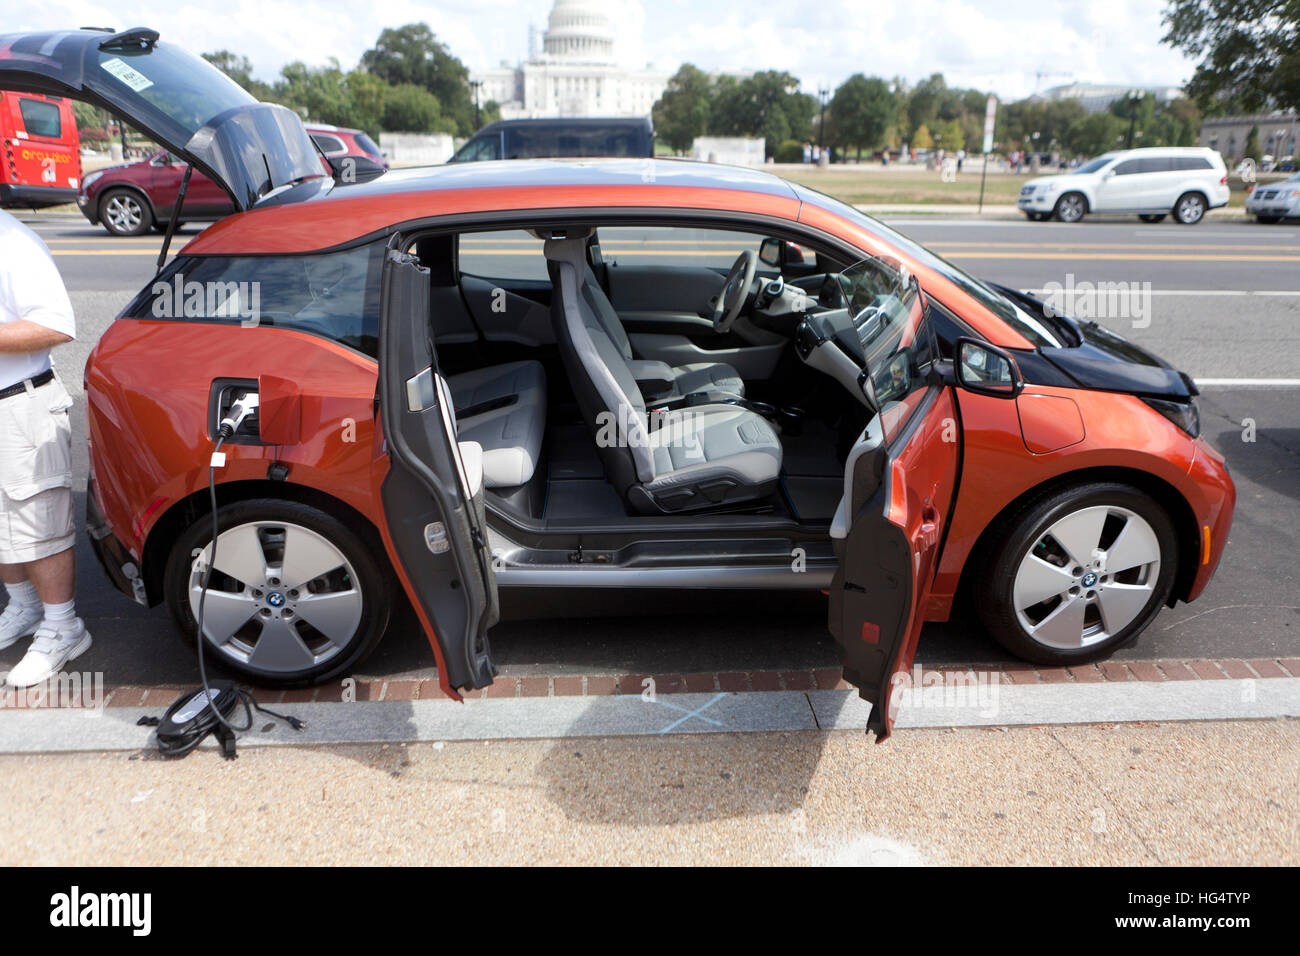 Bmw I3 Electric Vehicle With Side Doors Open Usa Stock Photo